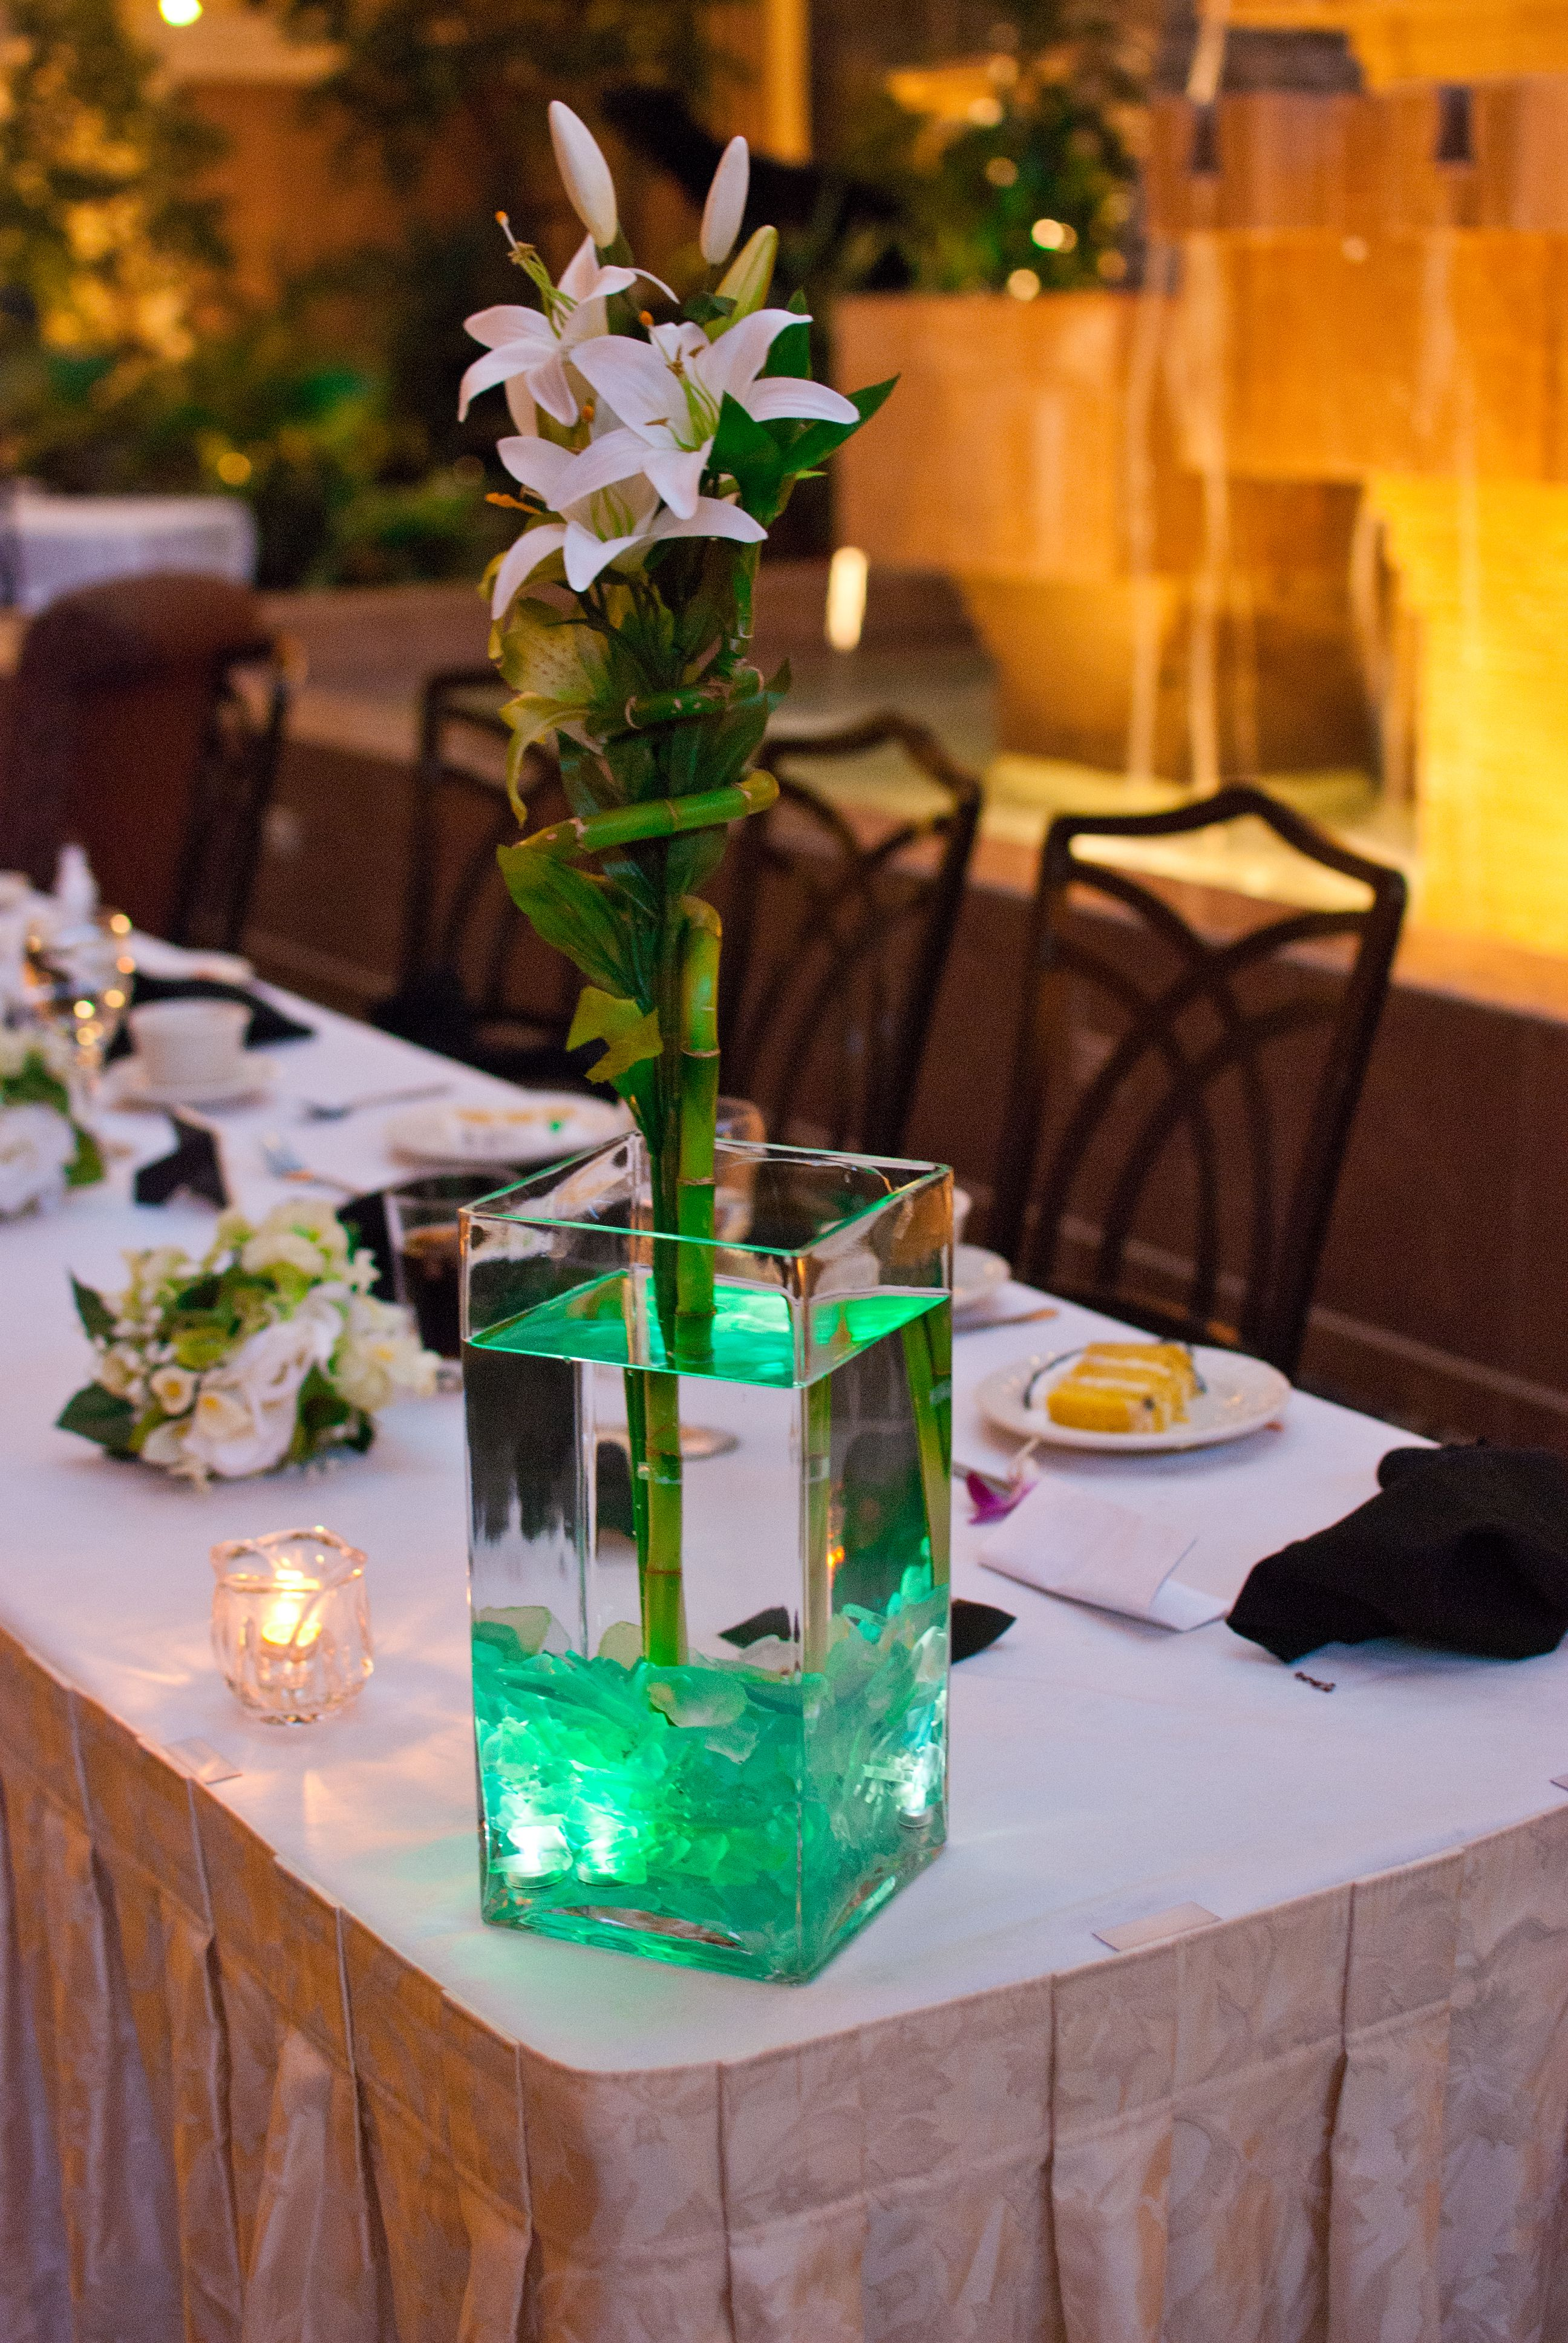 Wedding night decoration ideas  DIY bamboo and Lily centerpieces with cut sea glass and submersible